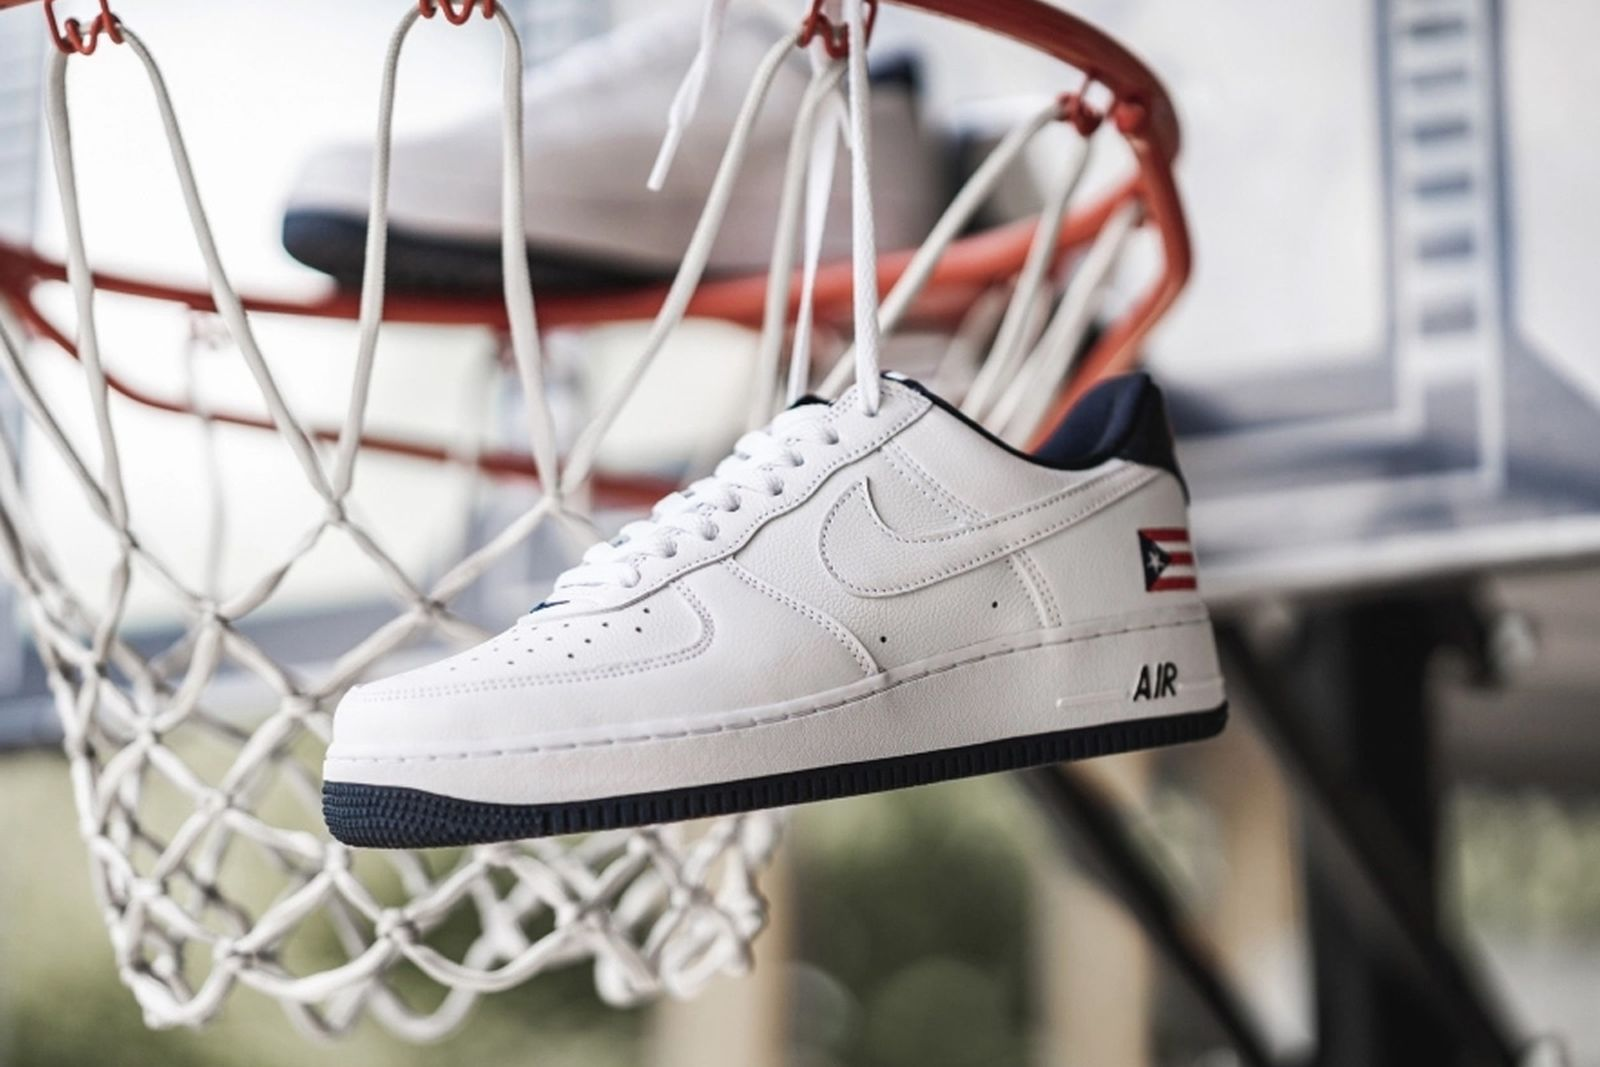 white leather Puerto Rico Nike Air Force 1 hanging in a basketball net